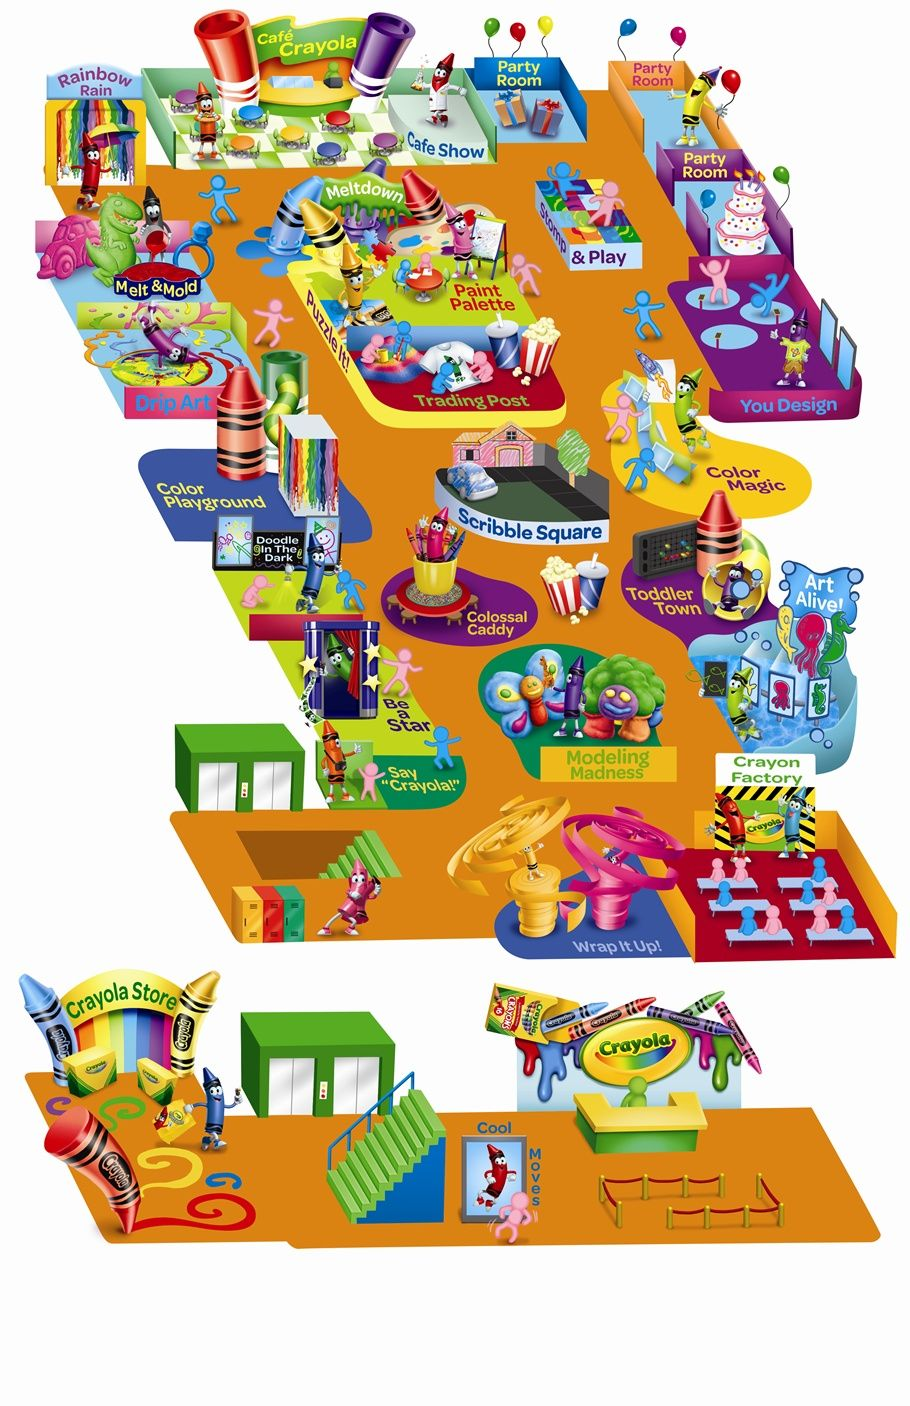 Florida Attractions Map.Crayola Store Attractions Map Floridamall Orlando Orlando